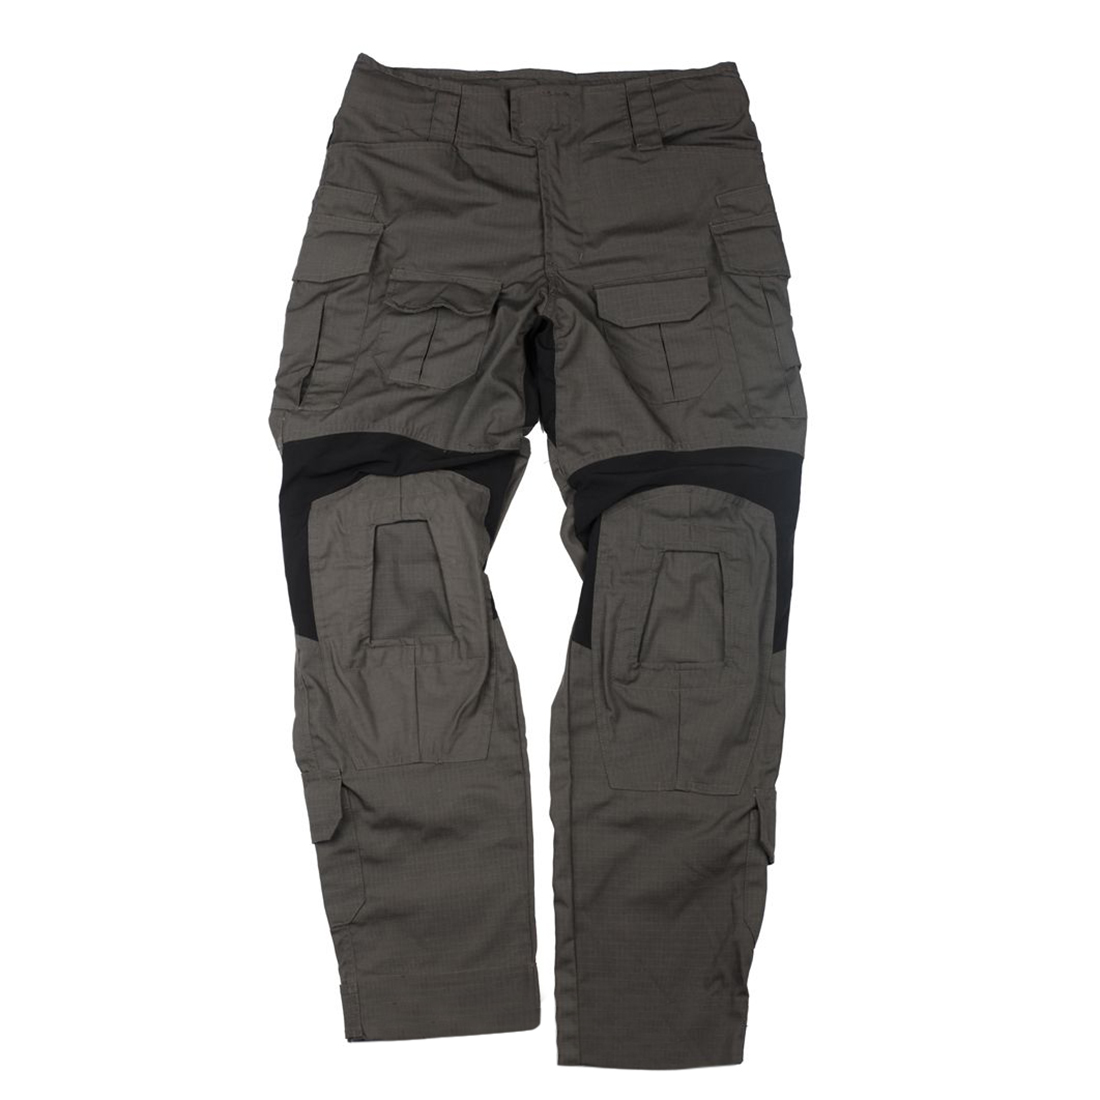 NewBACRAFT <font><b>G3</b></font> Multifunction Tactical <font><b>Pants</b></font> Outdoor Male <font><b>Combat</b></font> <font><b>Pants</b></font> - Smoke Green + Black XS/S/M/L/XL image